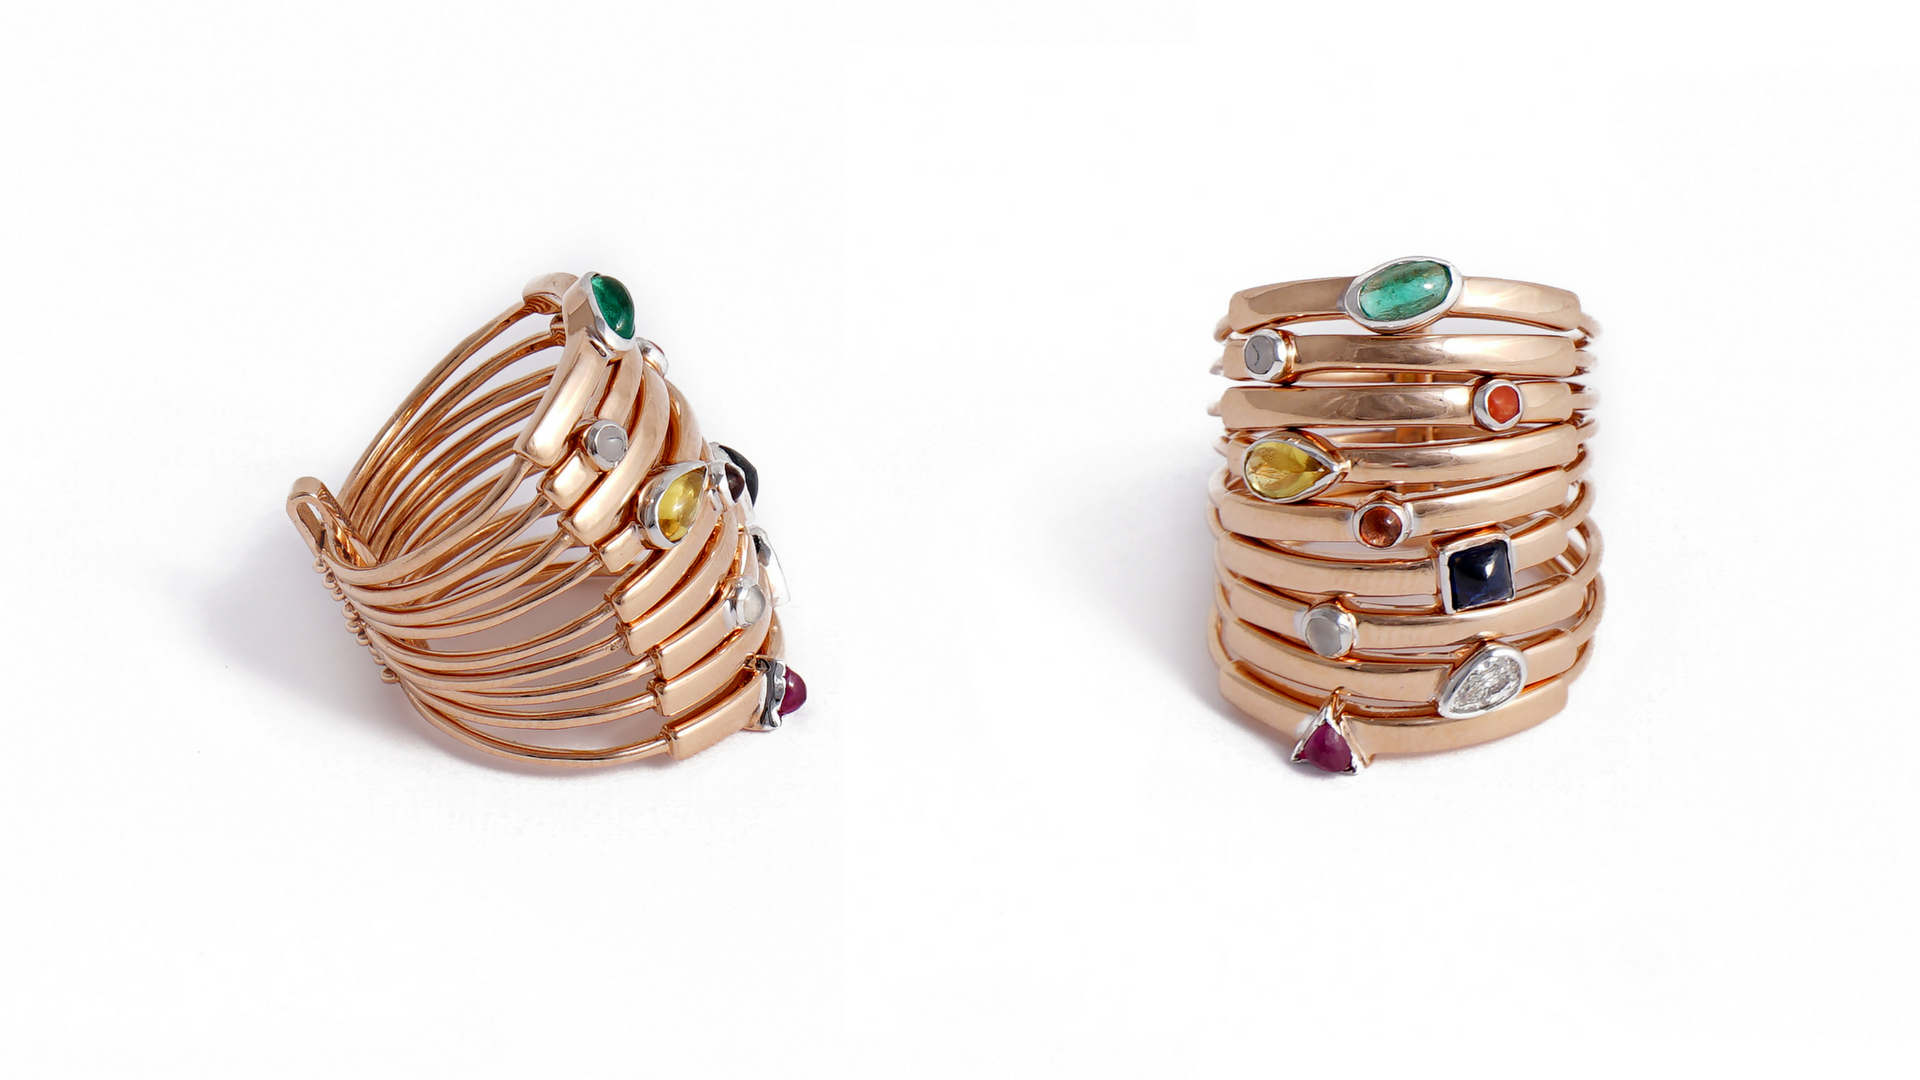 6 Middle Eastern Jewellery Designers Showcase Their Work In London Exhibition